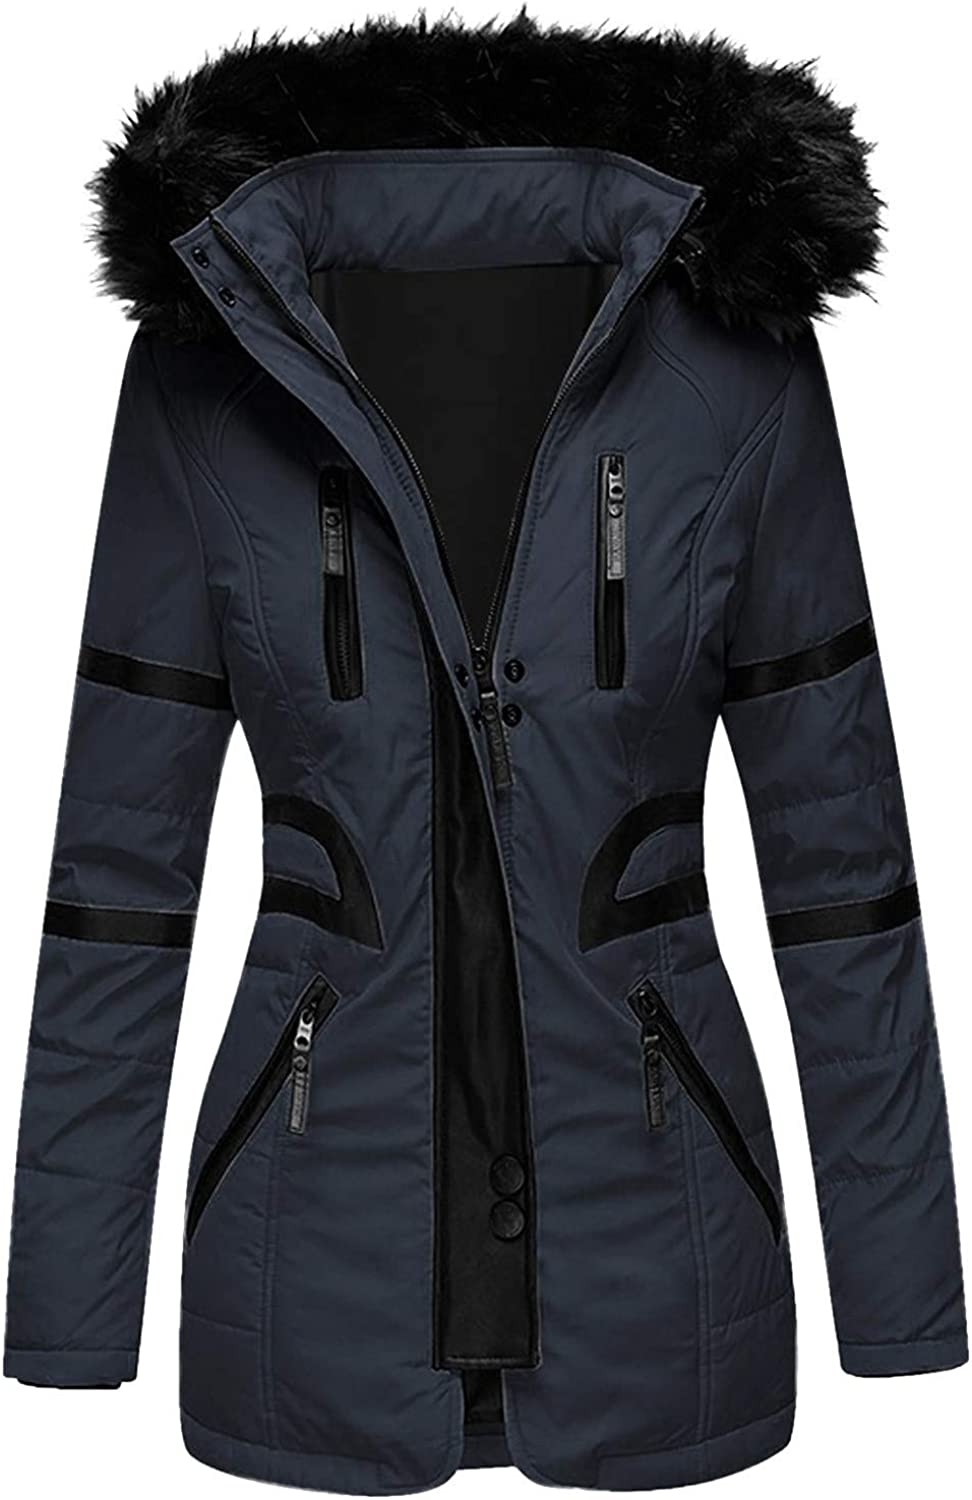 Limited price sale HGWXX7 Womens Overcoat Fashion Oversized Up Jacket Zip Max 78% OFF Parka wit